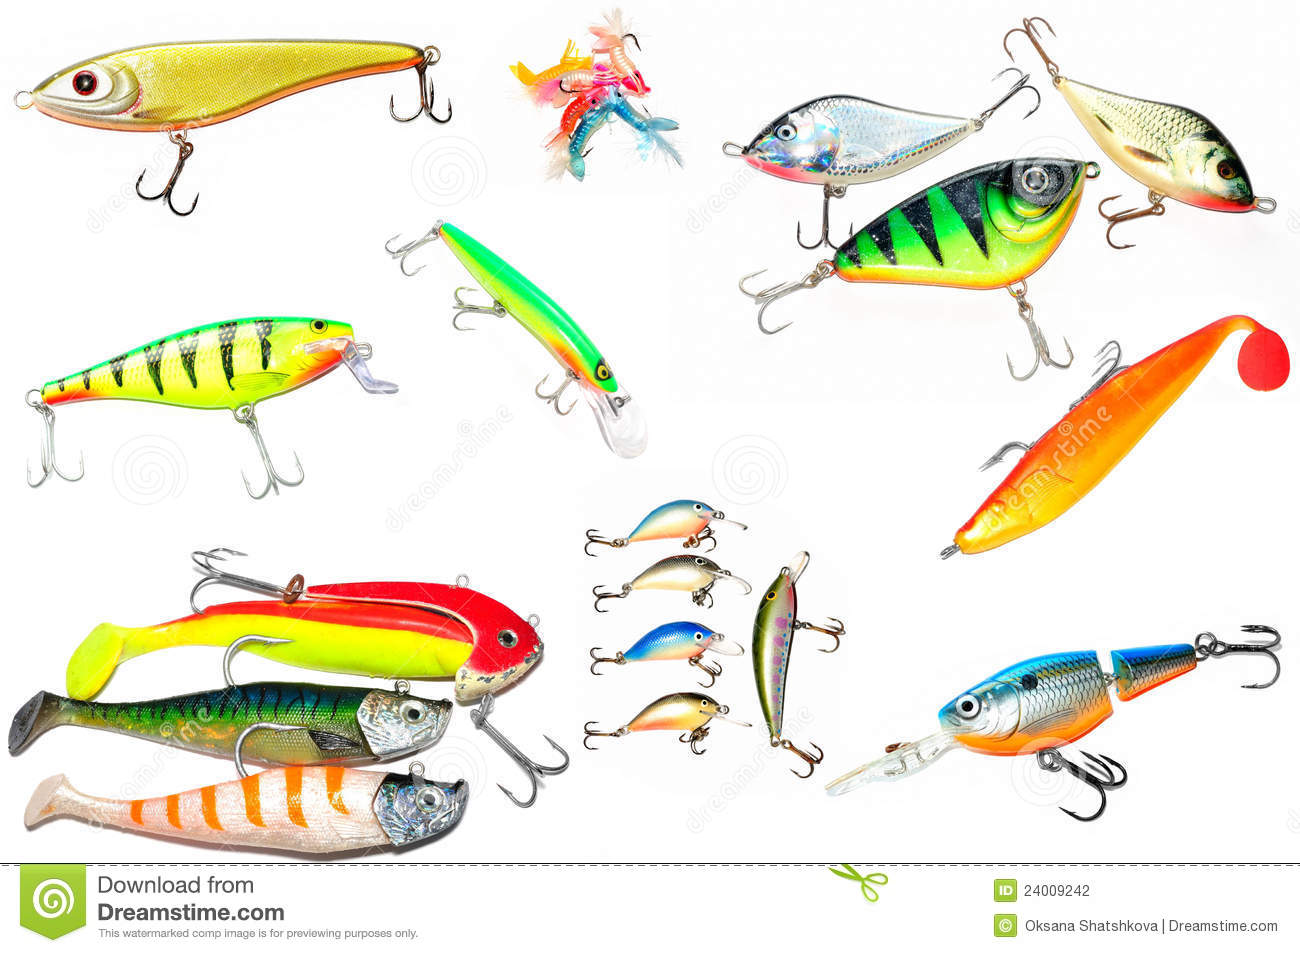 Fishing lure wobbler stock photography image 24009242 for How to make a fishing lure